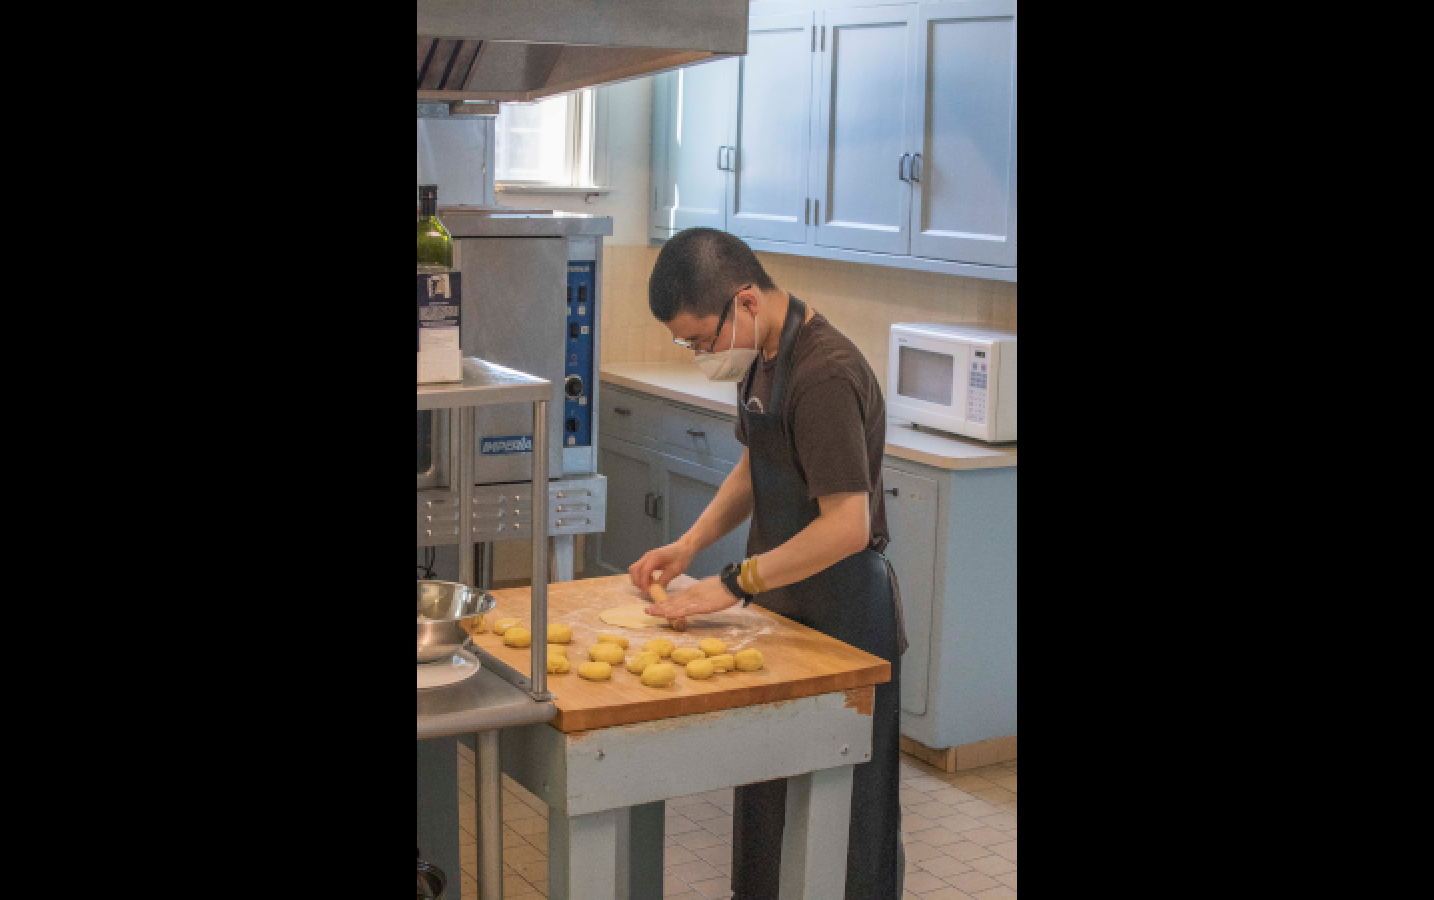 Justin Lee, a new staff member at DRBU, hand rolling delicious turmeric flatbread. It reminded me of a cross between a flour tortilla and chinese bread (餠).